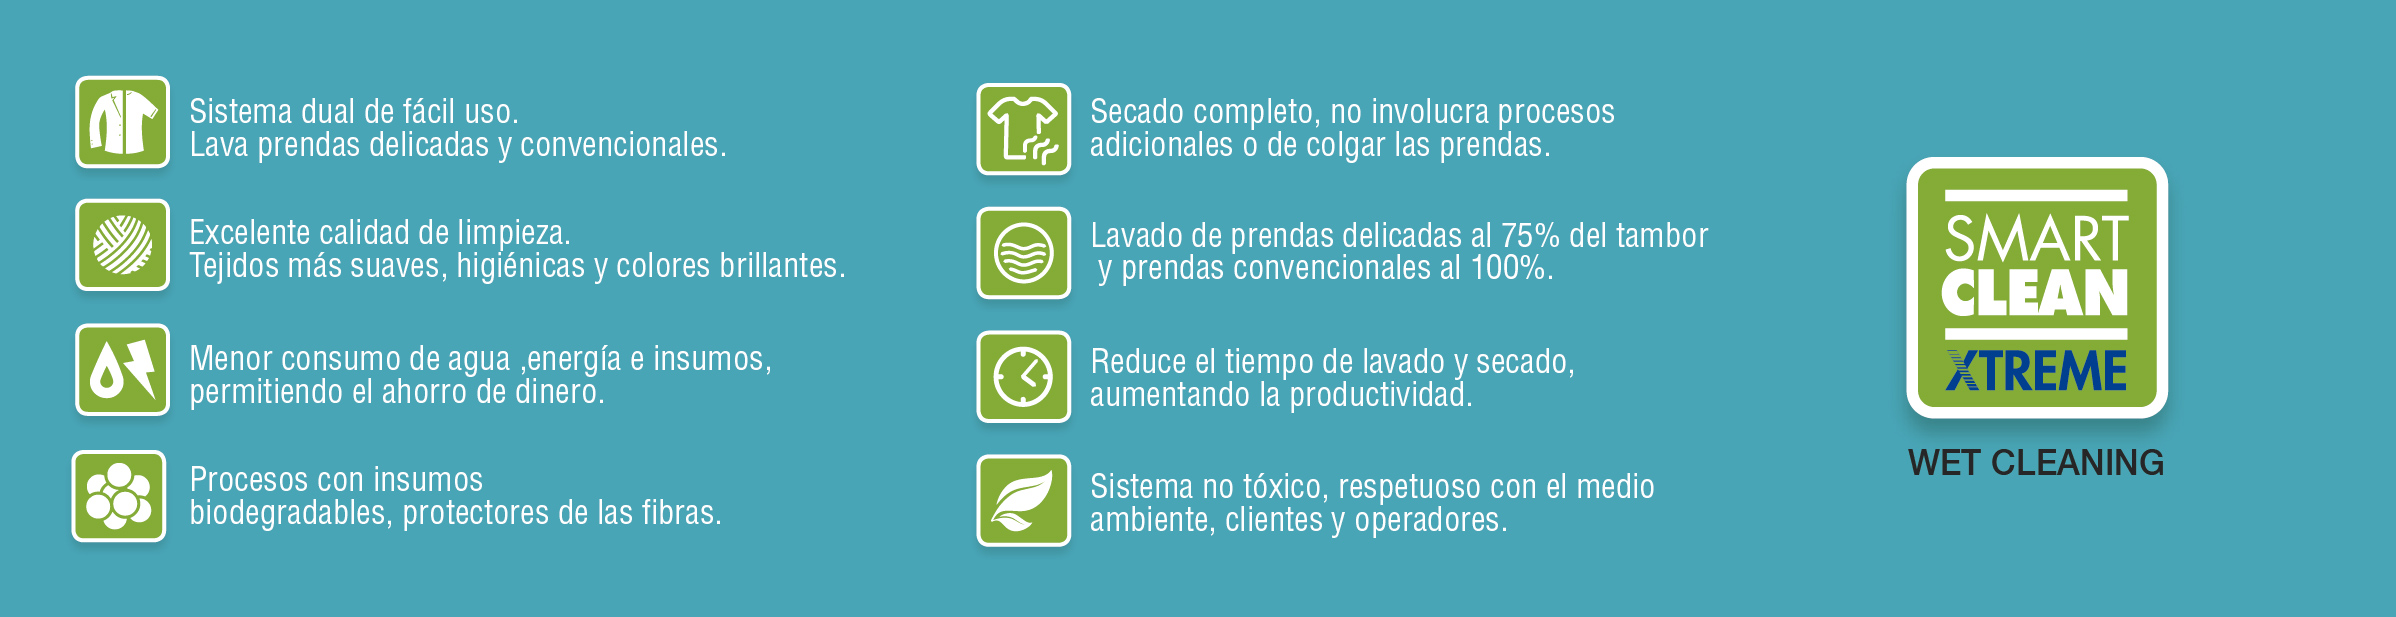 beneficios-smart-clean-xtreme-novotec-peru-02-01